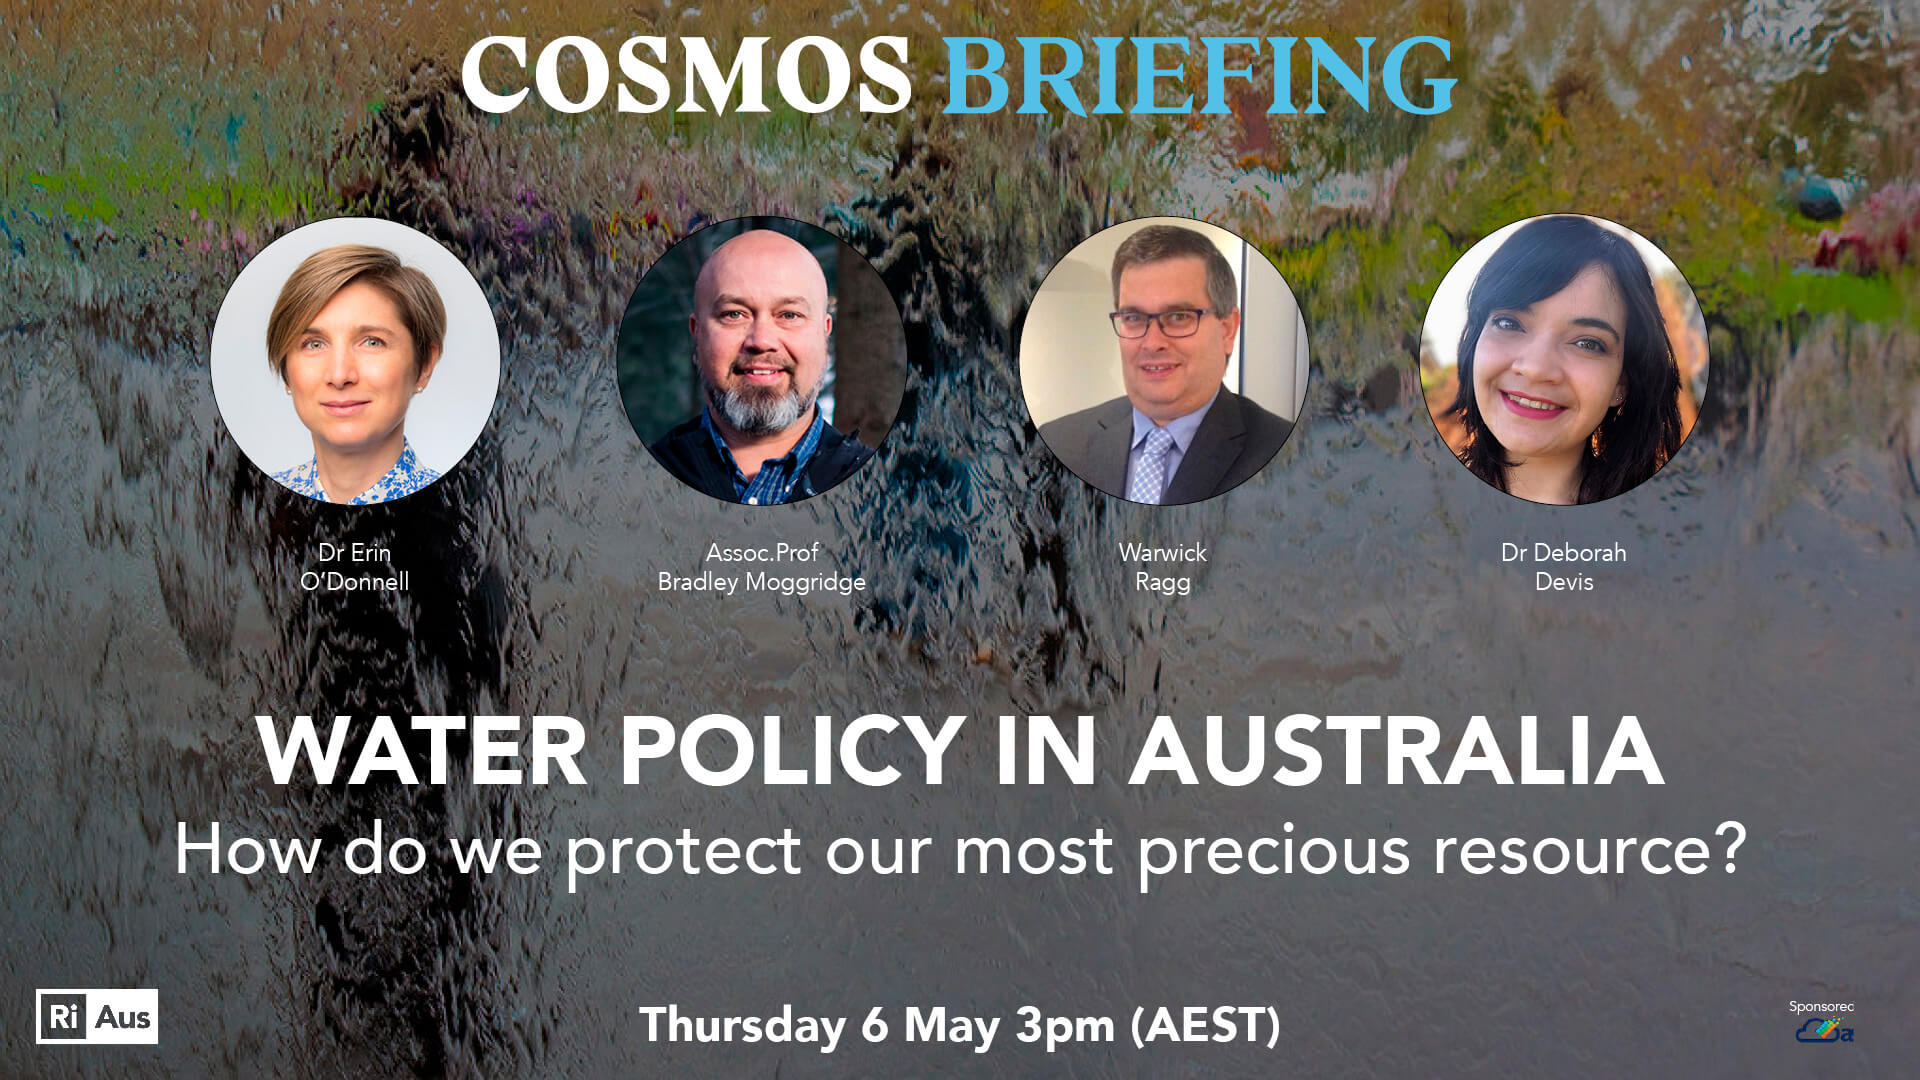 Cosmos briefing: water policy in australia